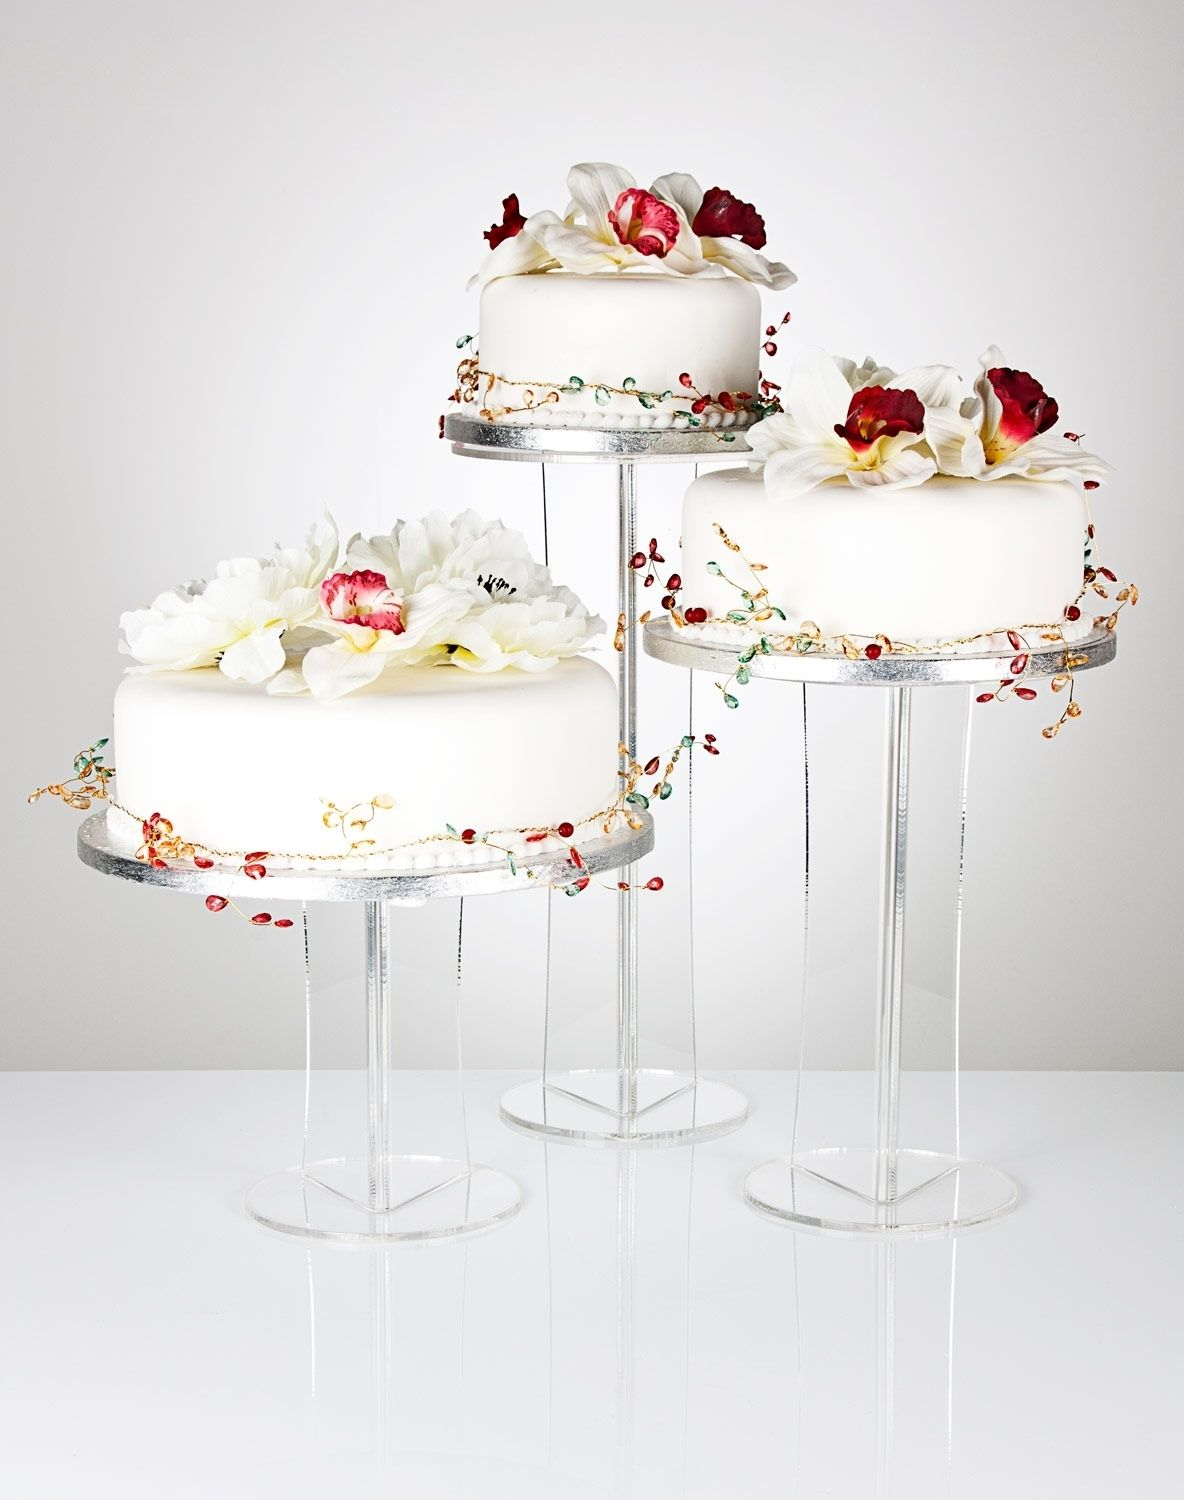 Elegant Clear Cake Stands In A Round Design Available In A Range